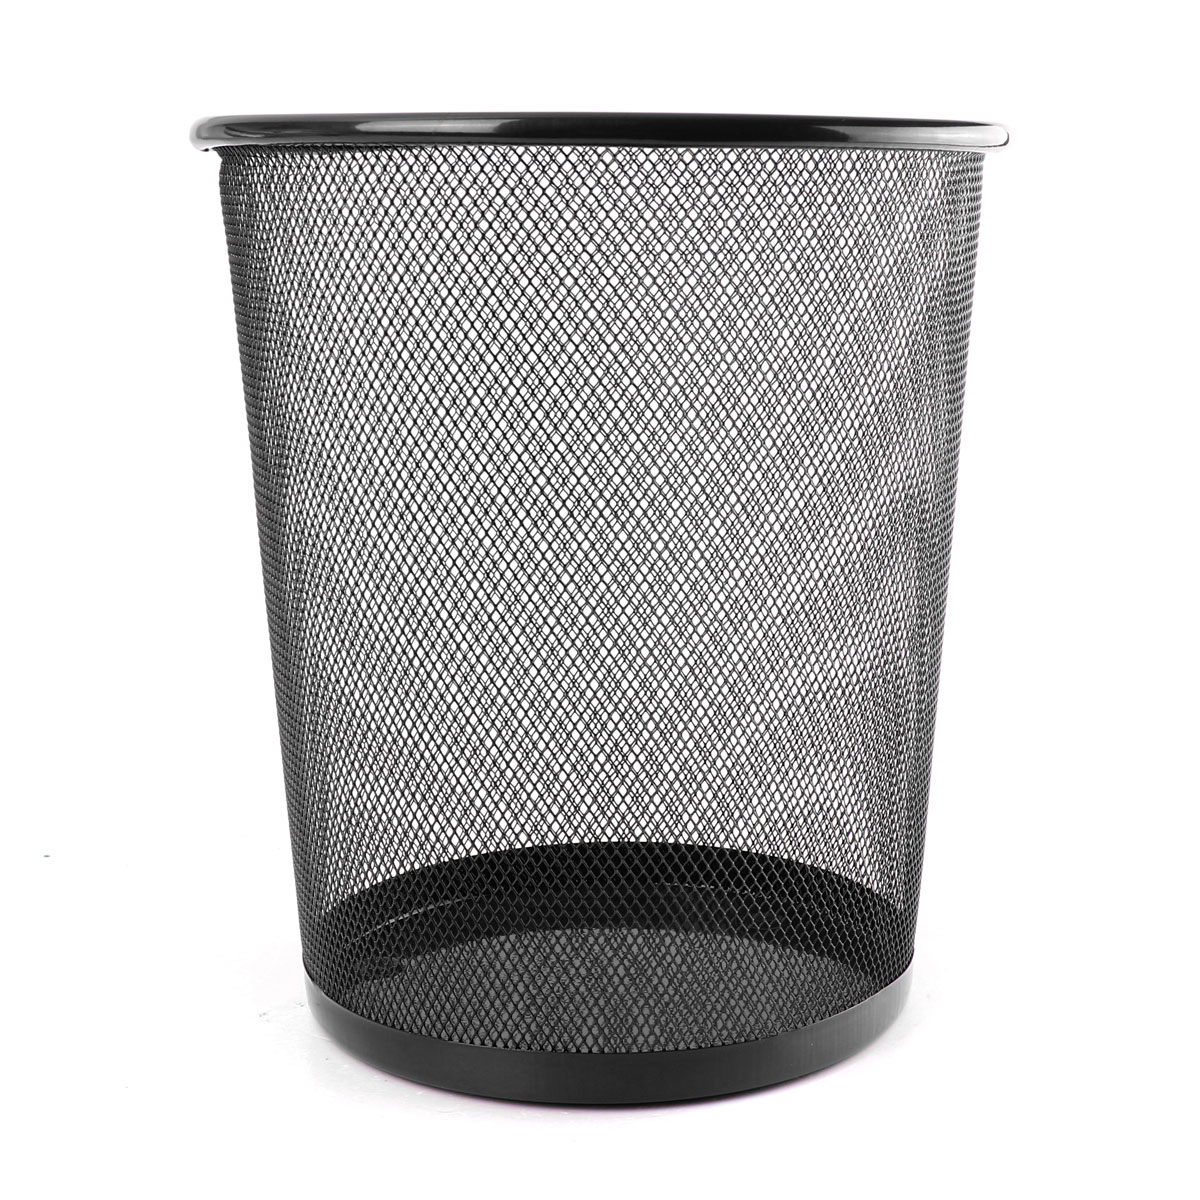 Decorative Metal Waste Baskets Office Can Metal Mesh Waste Bin Wastebasket Rubbish Paper